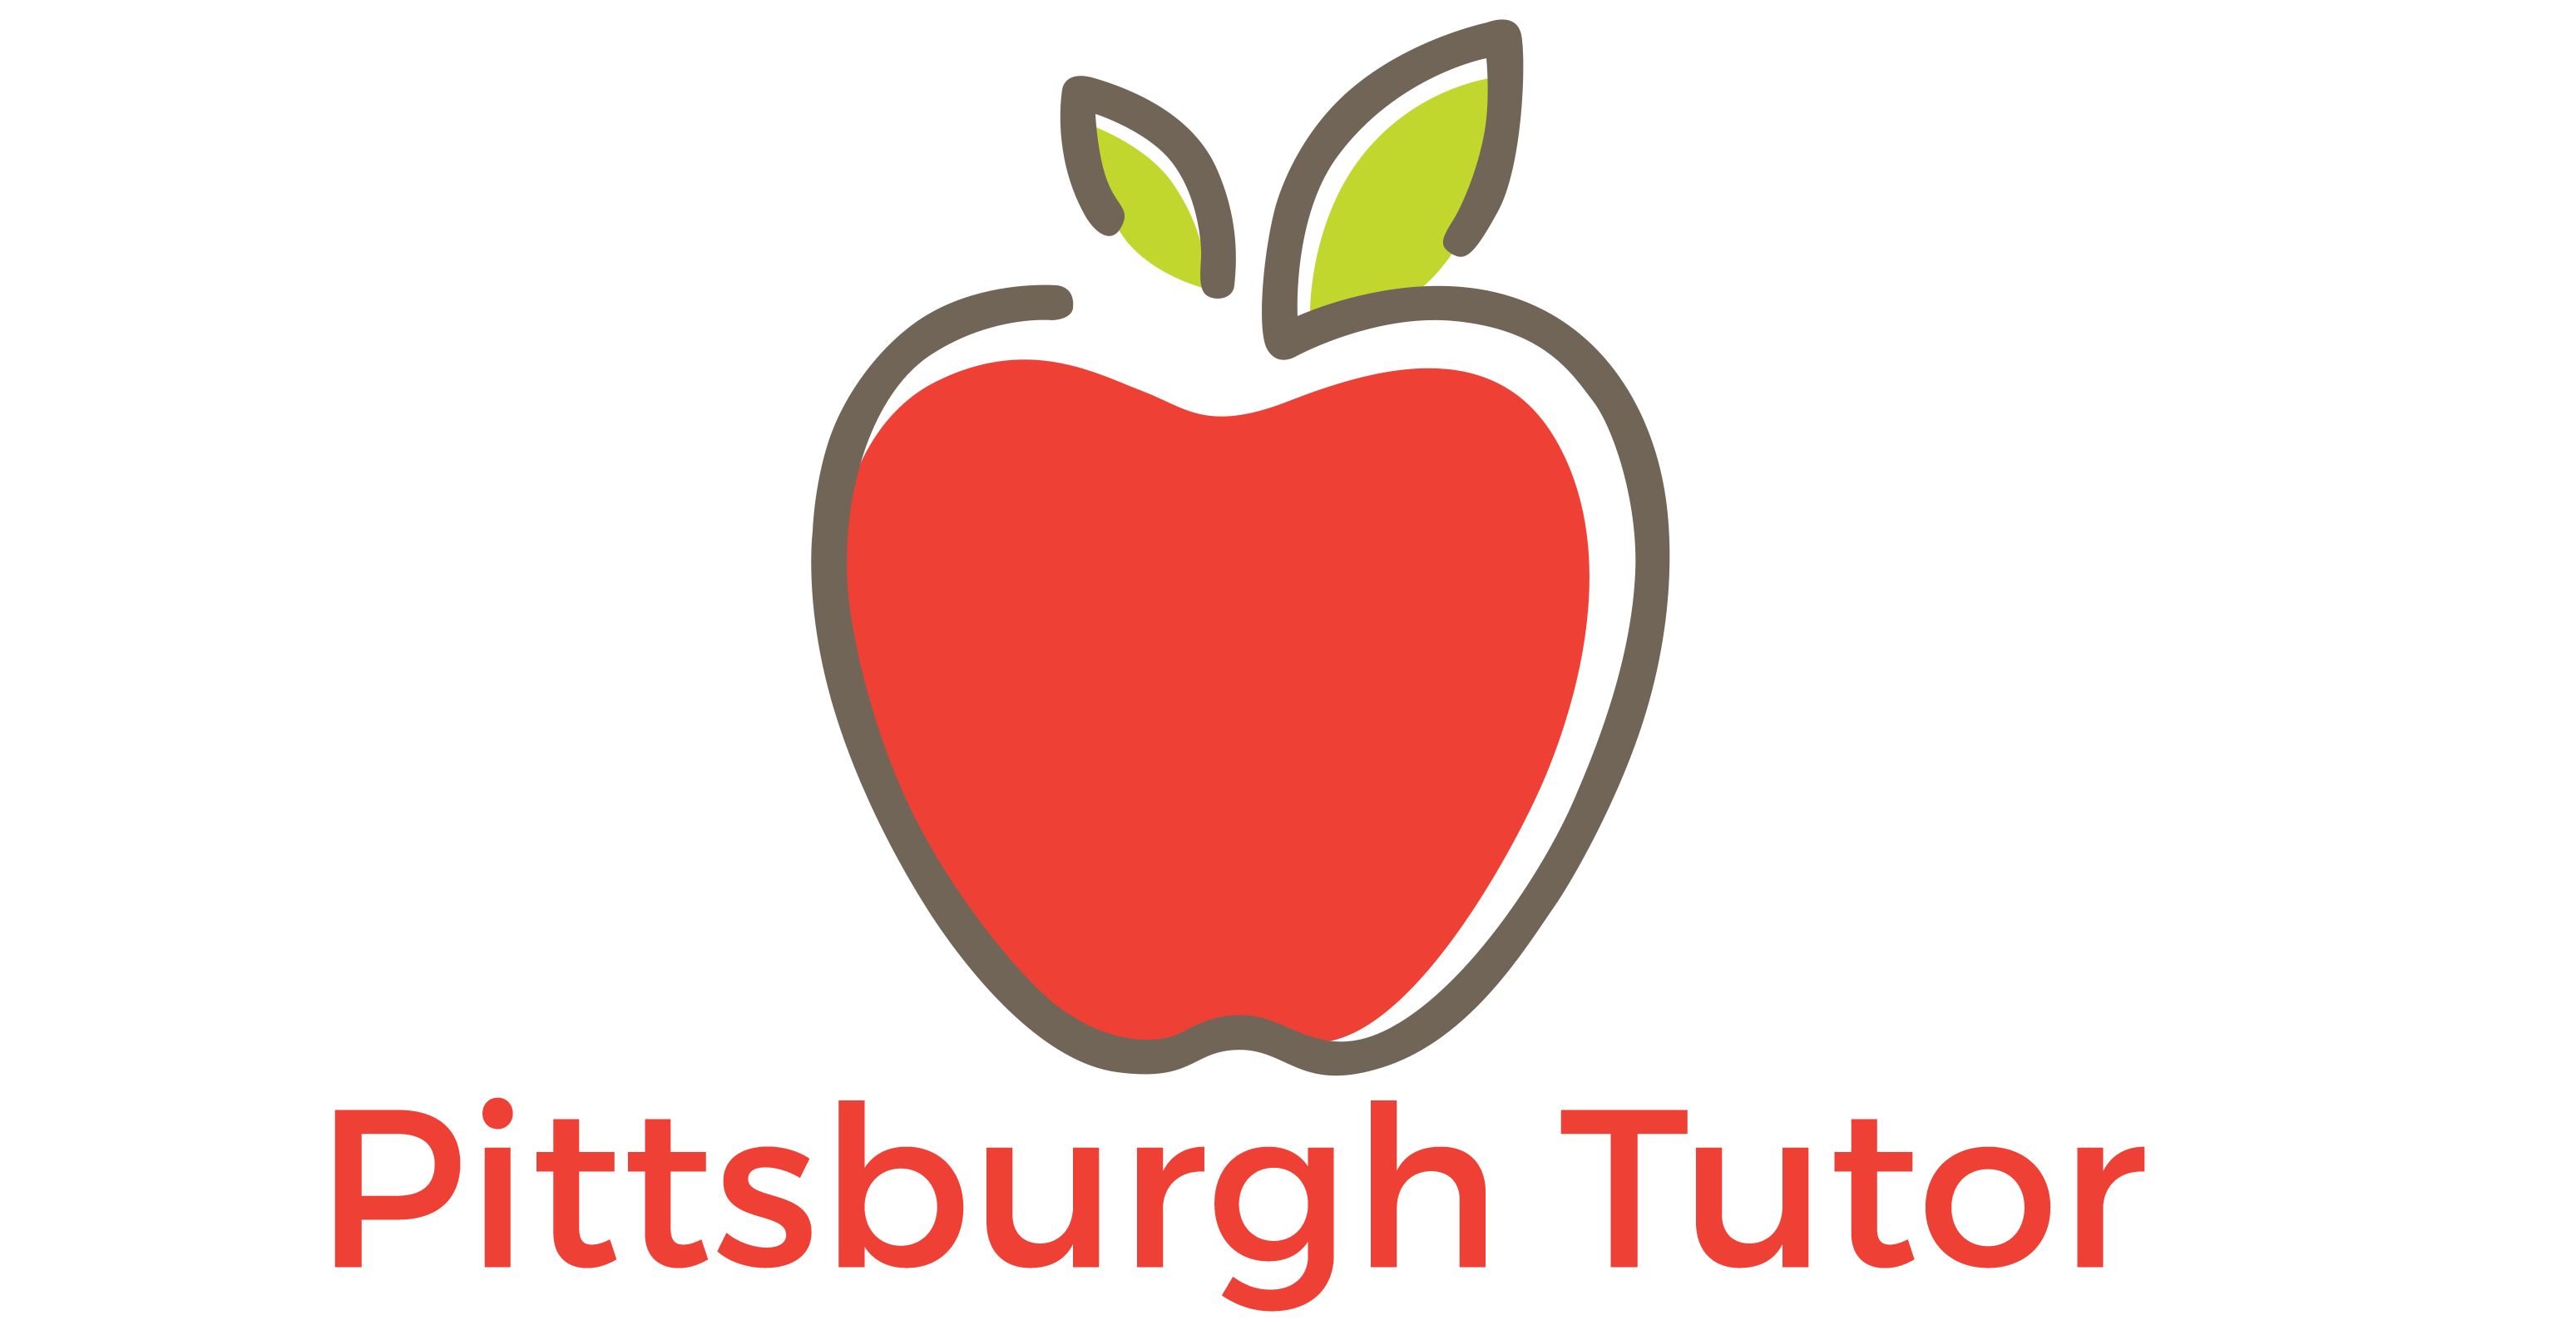 Pittsburgh Tutor